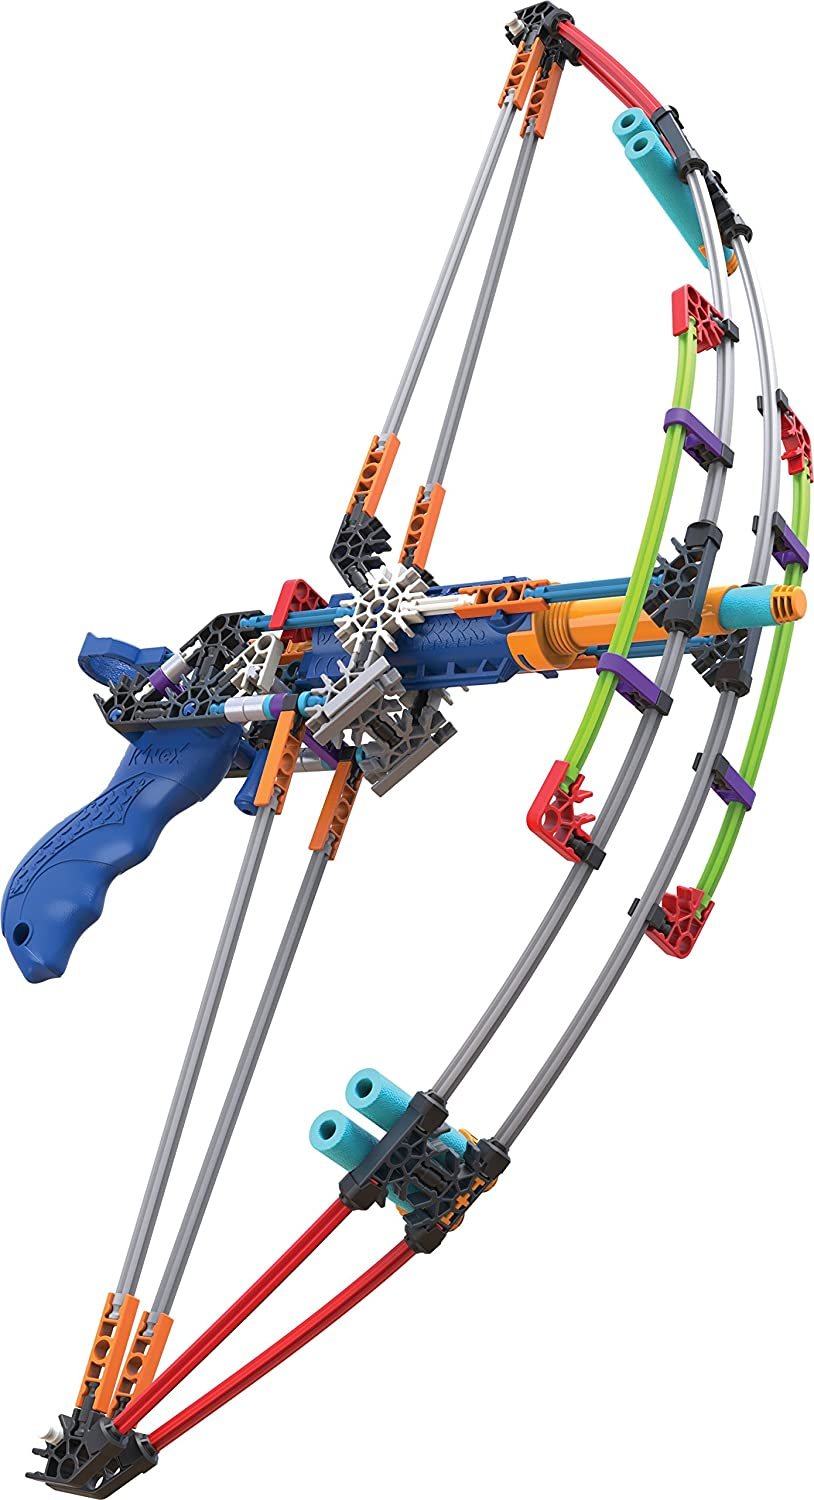 K'NEX K-FORCE Battle Bow Build and Blast Set – 165 Pieces – Ages 8+ Engineering Education Toy K'NEX 47525